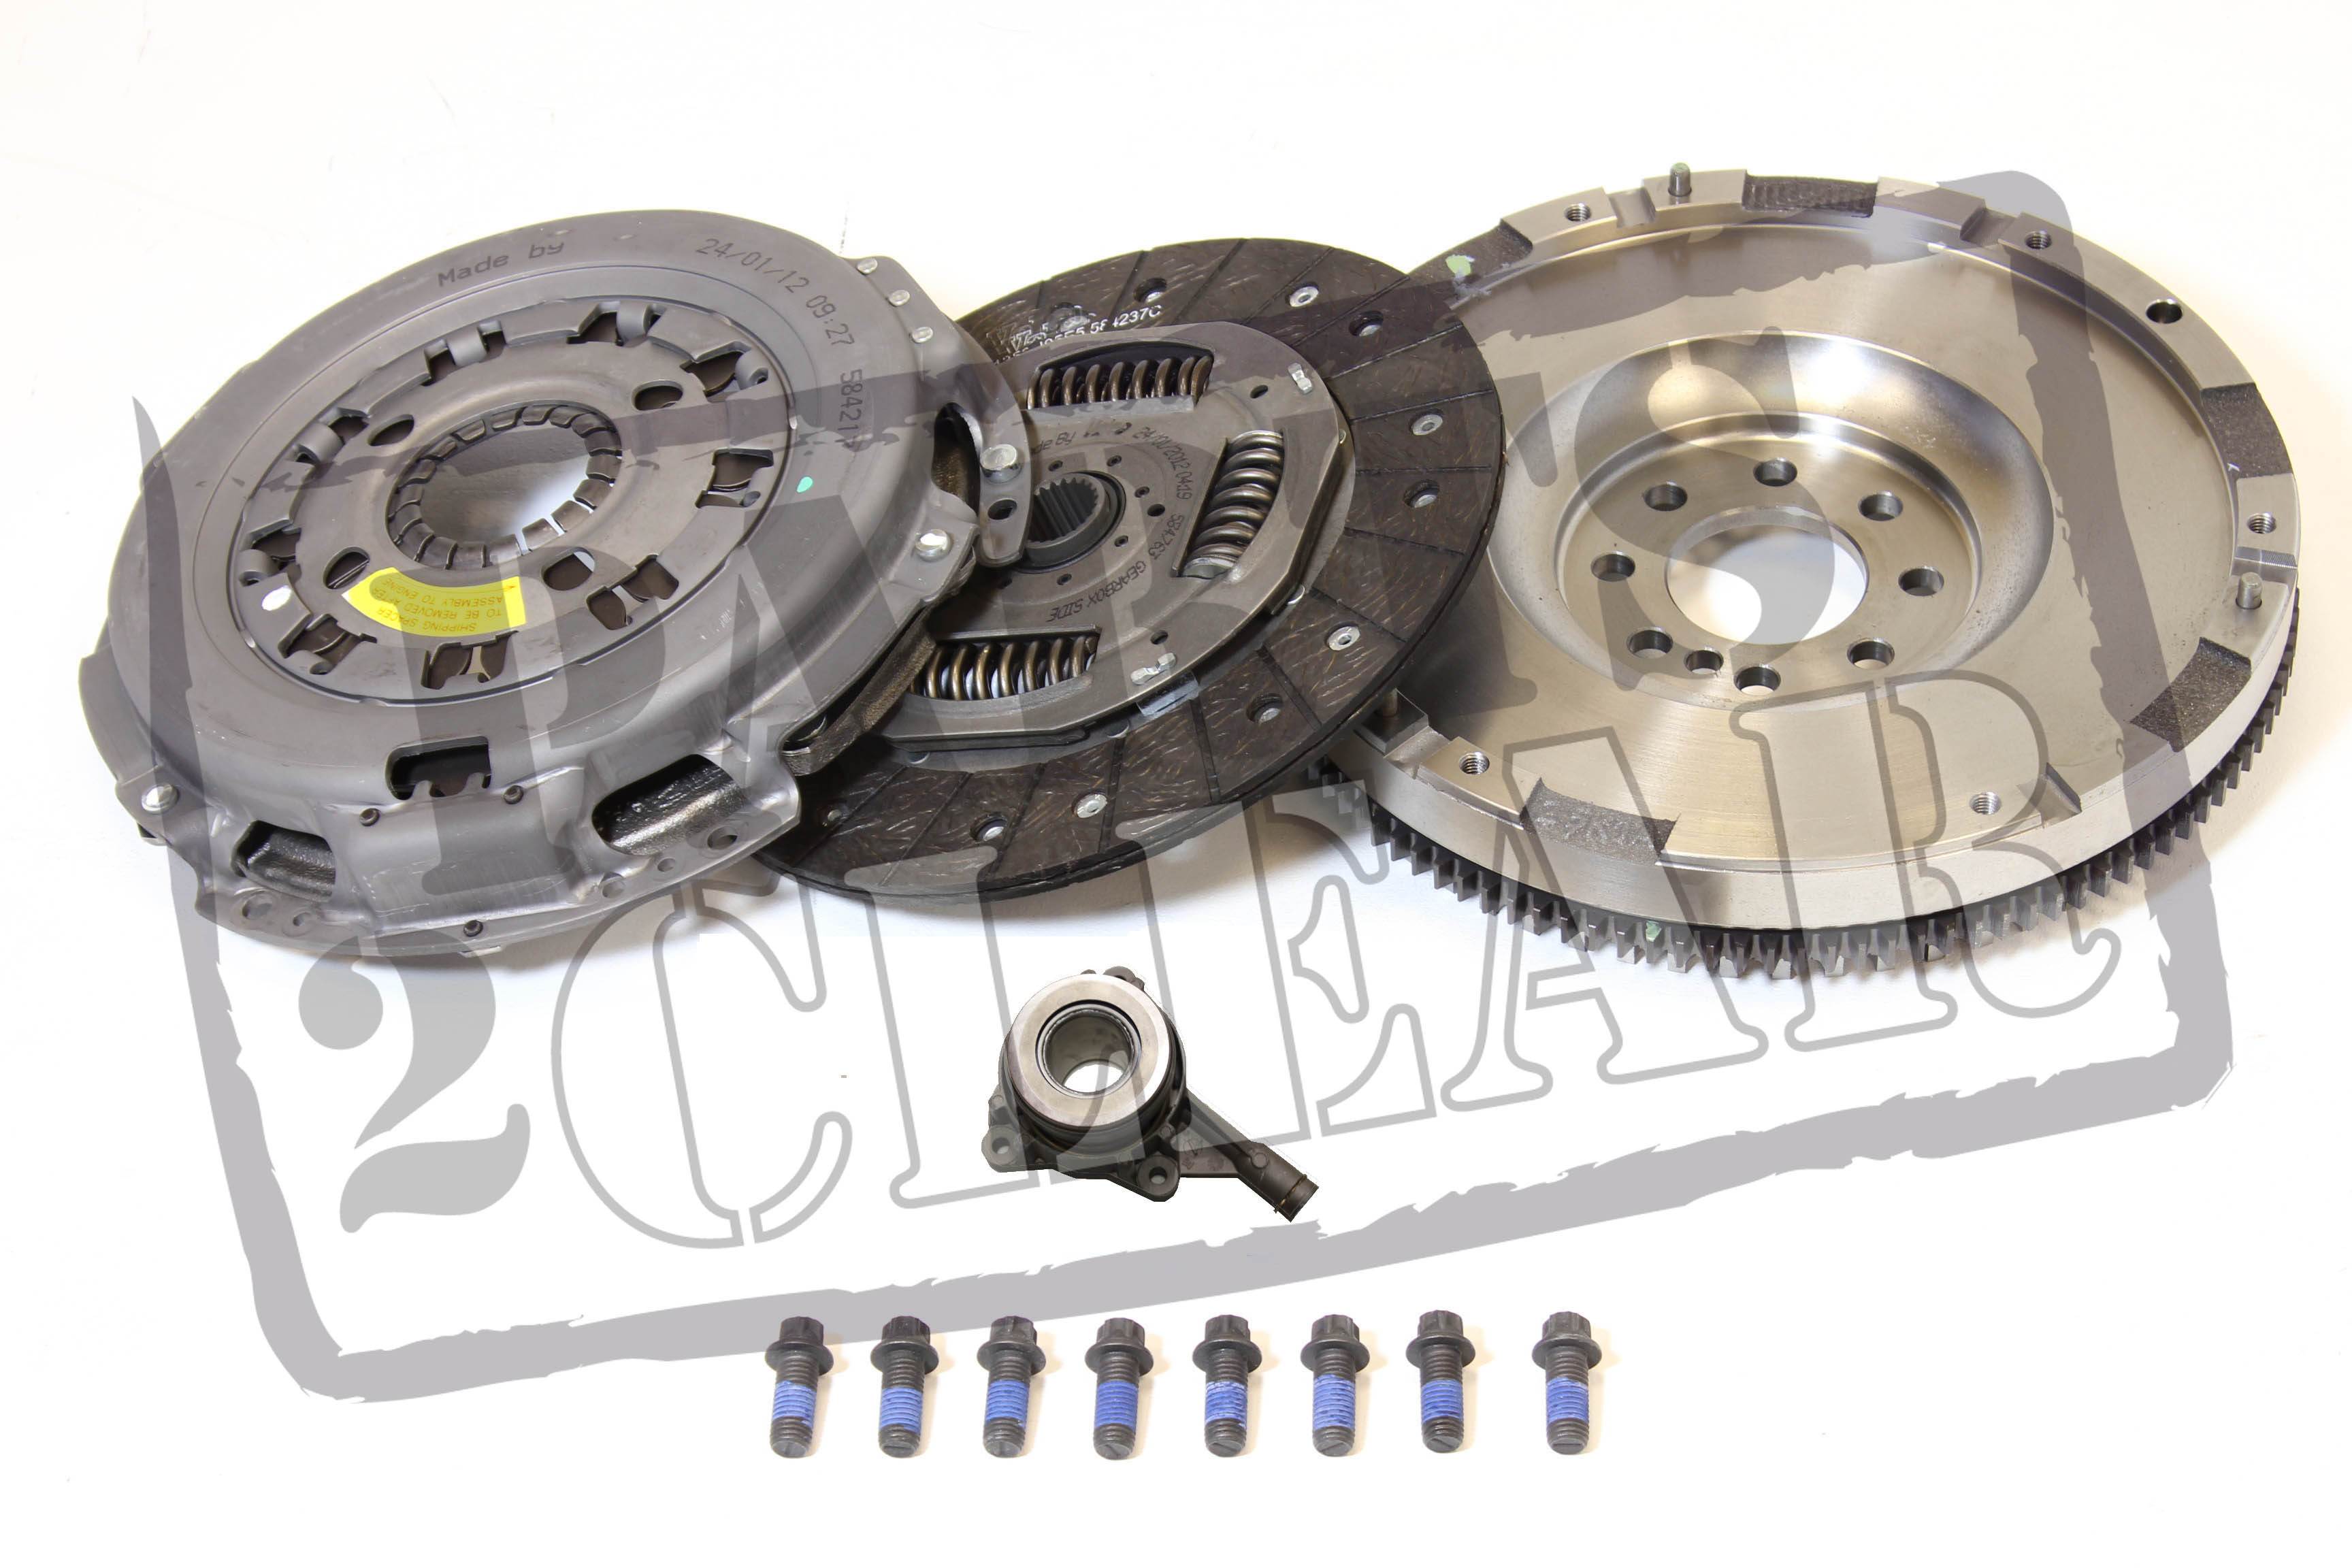 Concentric Clutch Slave 2.0TDCi With 6 Speed 00-07 Ford Mondeo MKIII 2.0TDDi